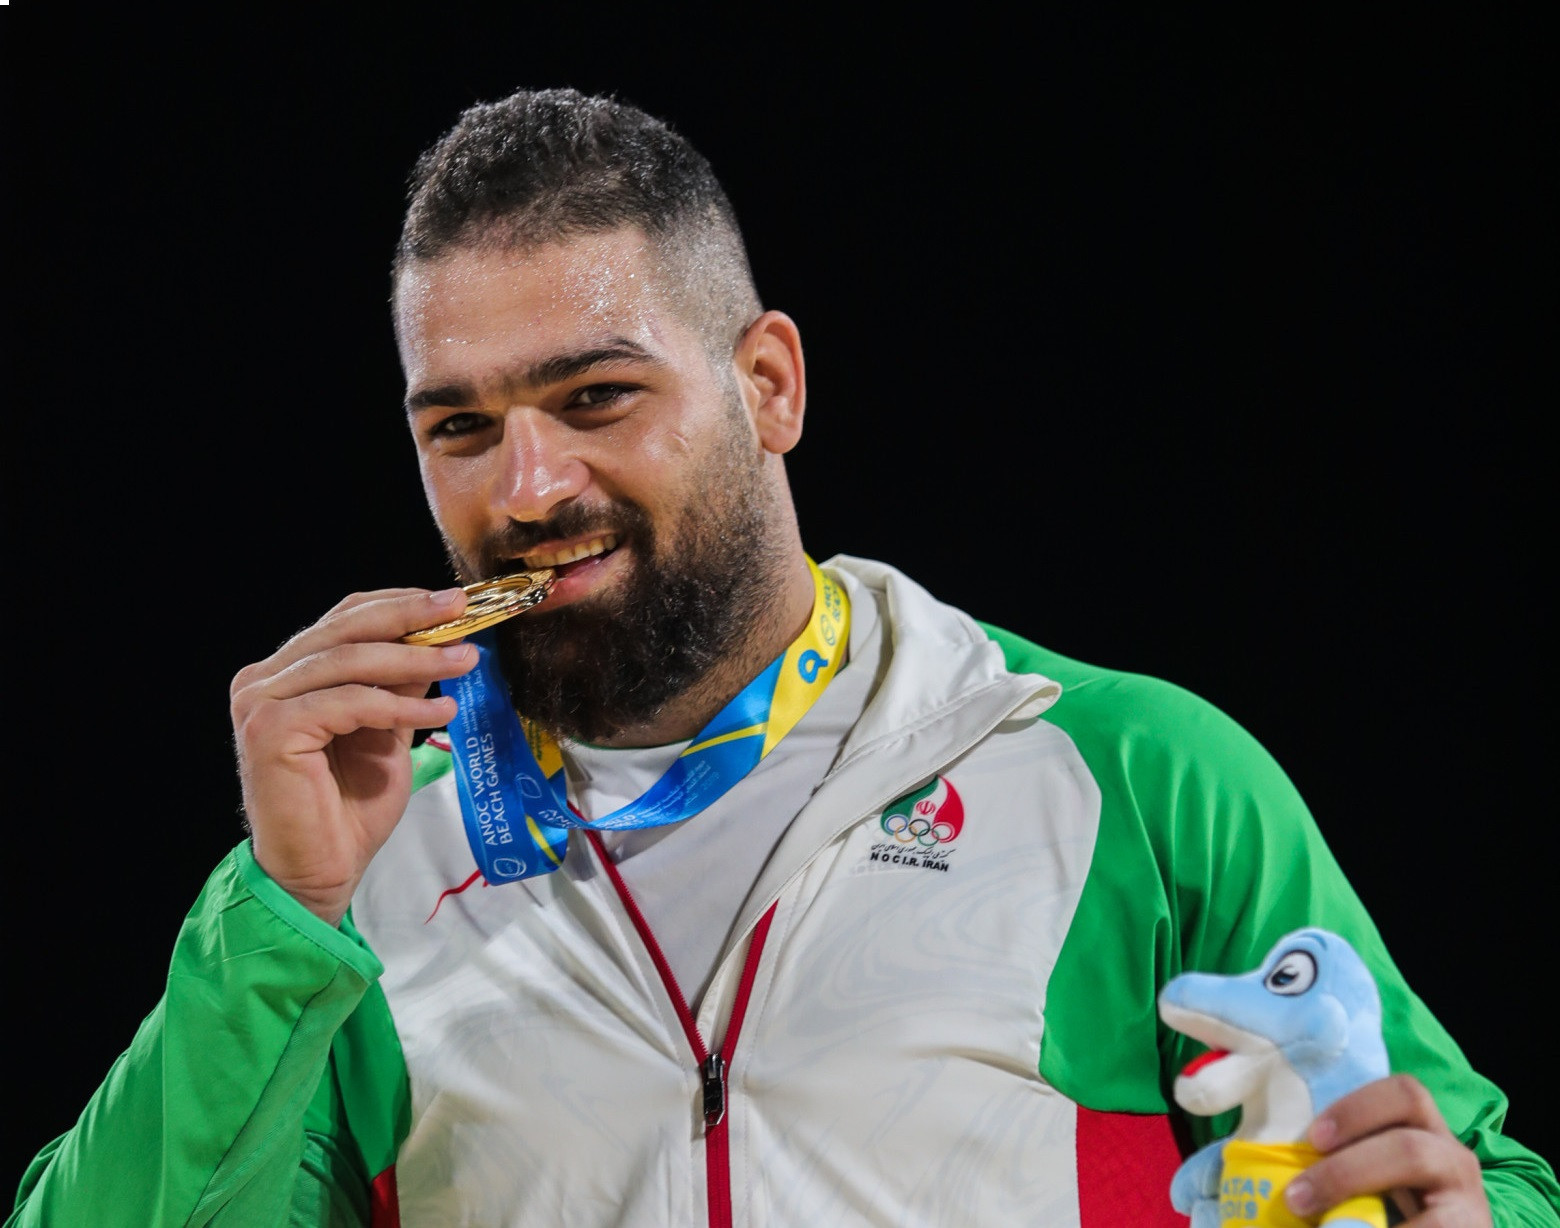 Pouya Rahmani of Iran will reportedly be stripped of his World Beach Games gold medal ©ANOC World Beach Games